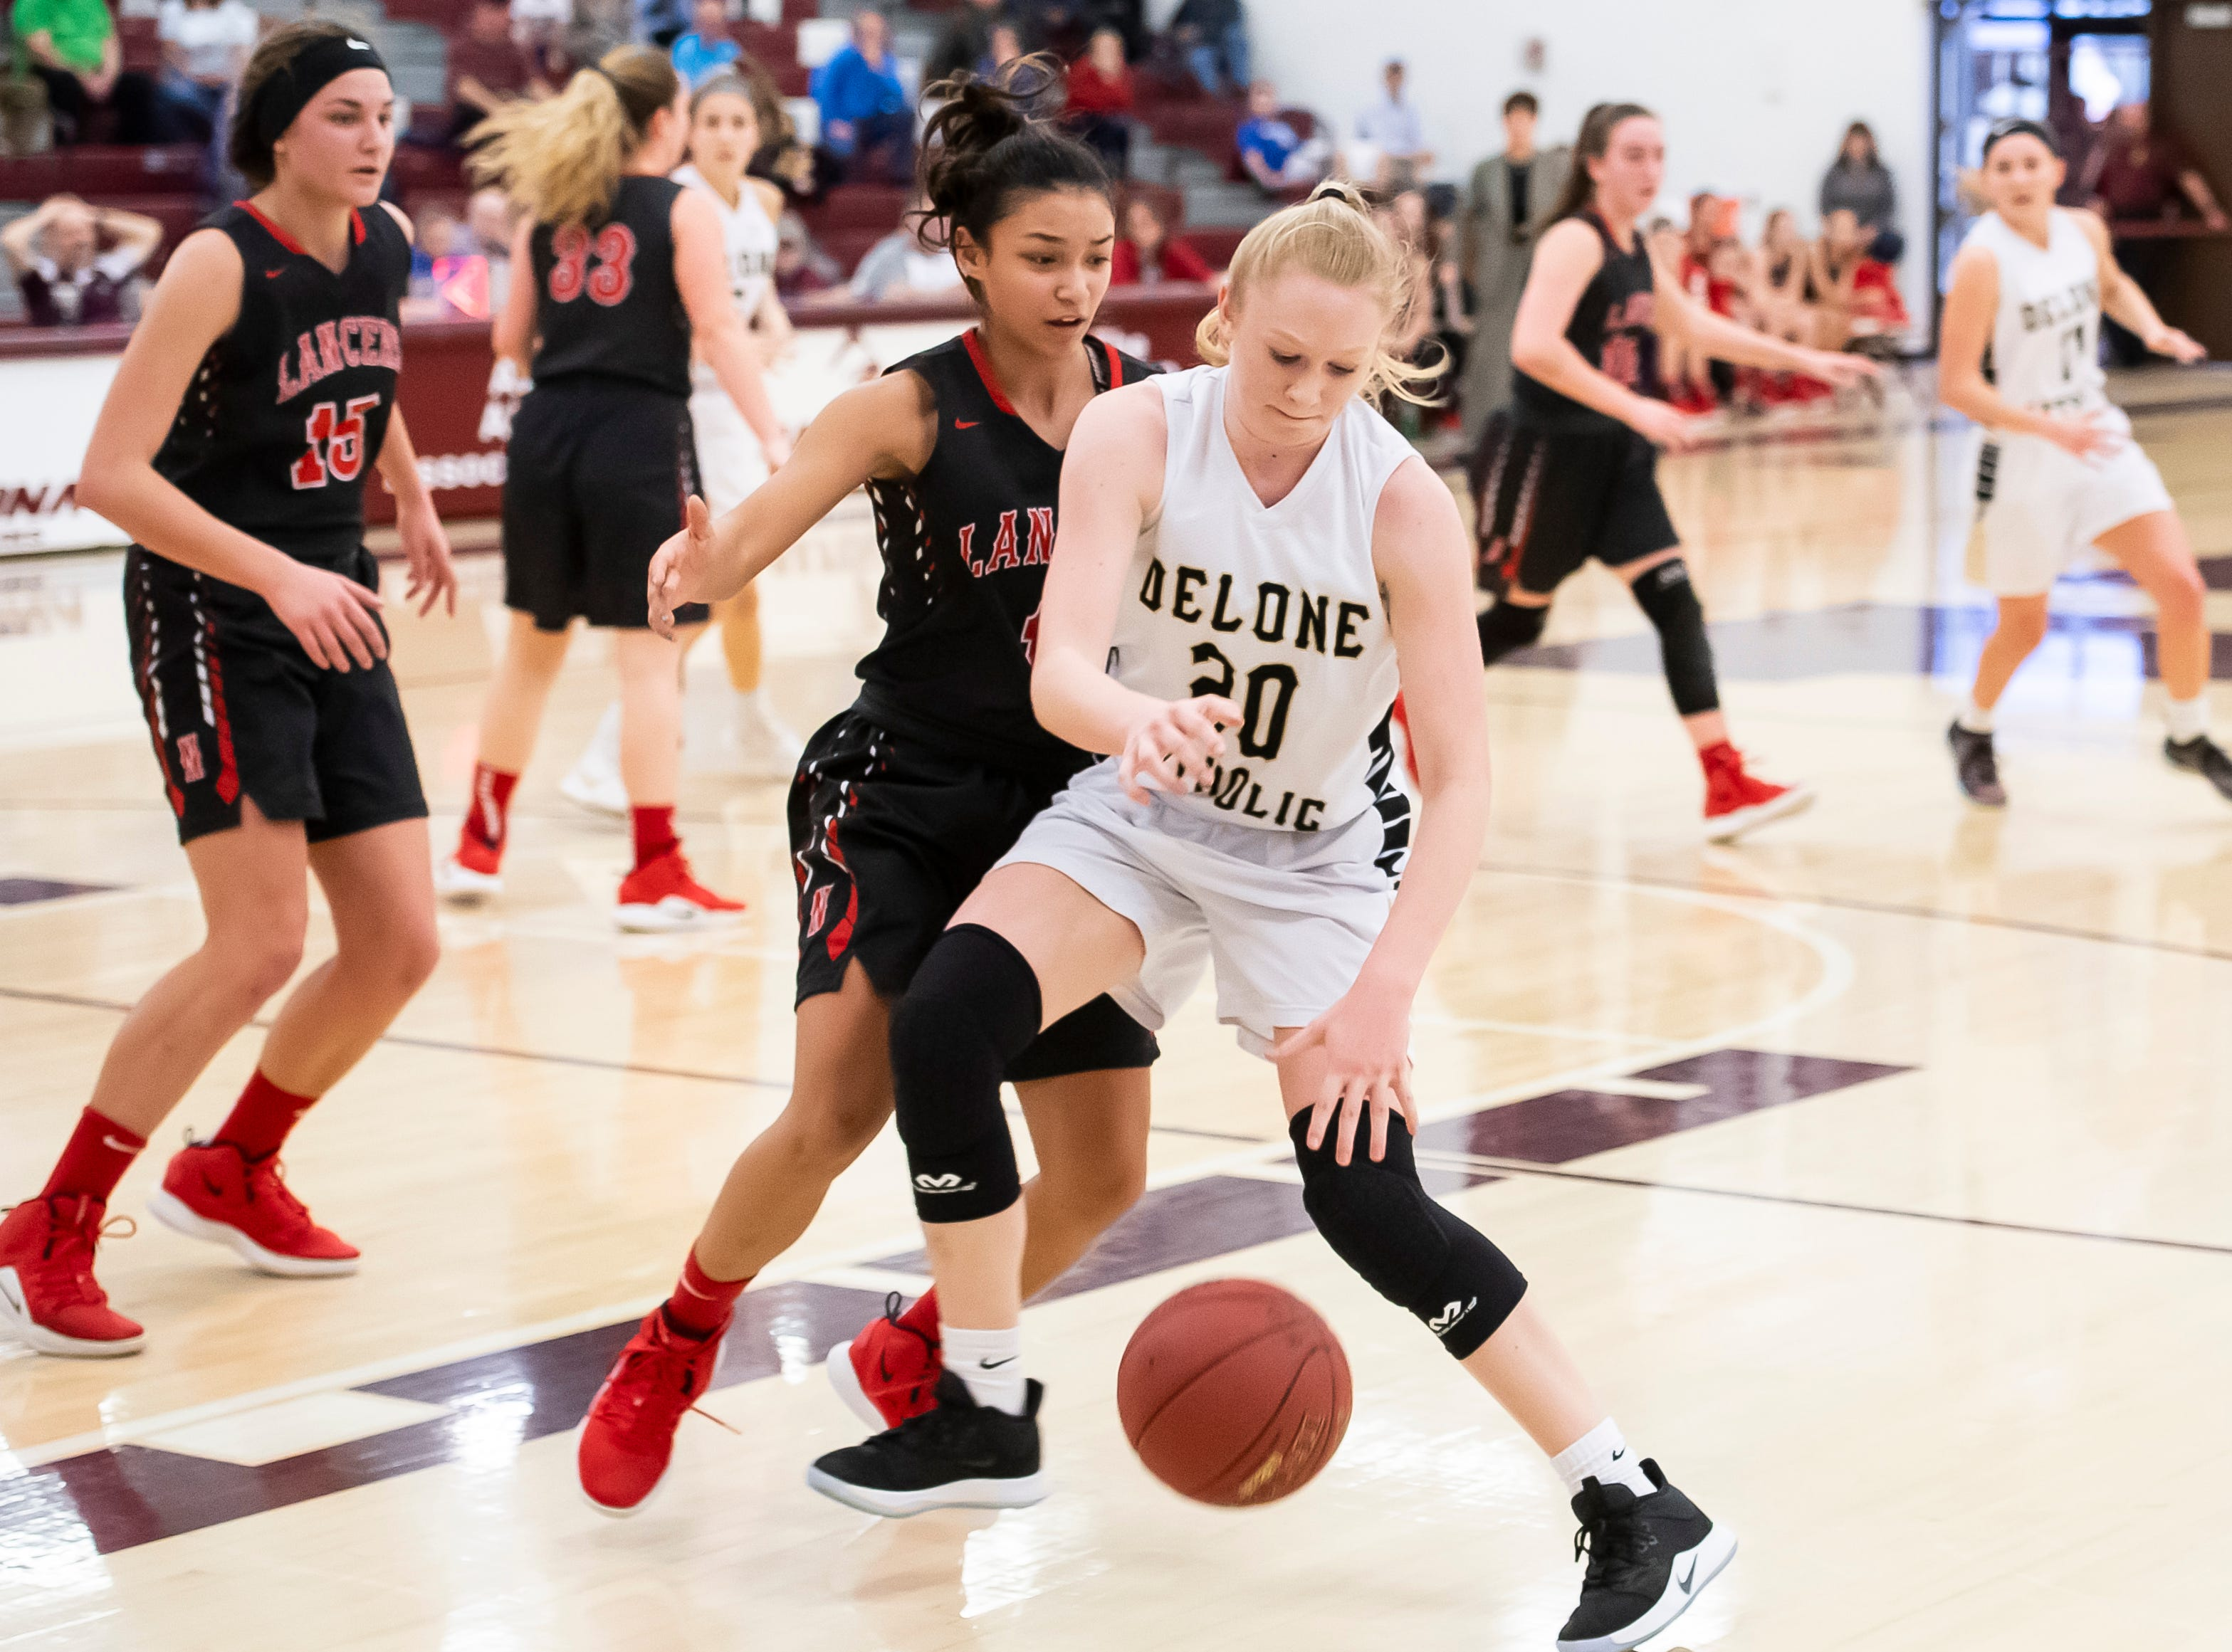 Delone Catholic's Brooke Lawyer dribbles against Neshannock's Neleh Nogay during a PIAA 3A quarterfinal in Altoona, Pa., on Friday, March 15, 2019. The Squirettes won 50-41.